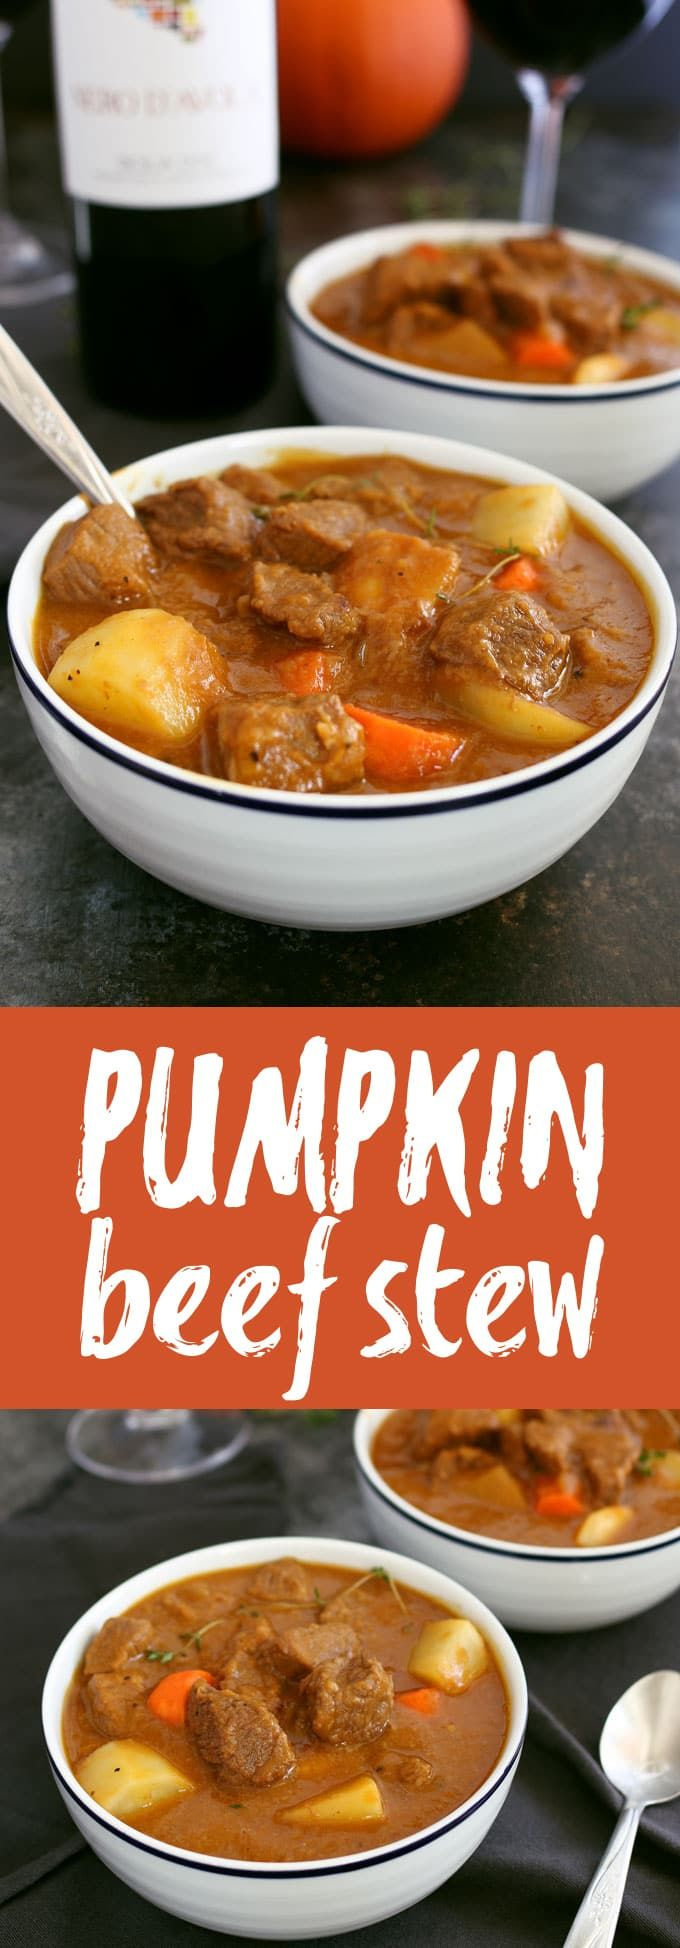 This pumpkin beef stew recipe is the perfect meal for cool autumn nights. It is savory, hearty and guaranteed to warm you up! Pair it with a glass of Nero d'Avola, one of my favorite Sicilia DOC wines. | honeyandbirch.com Sponsored